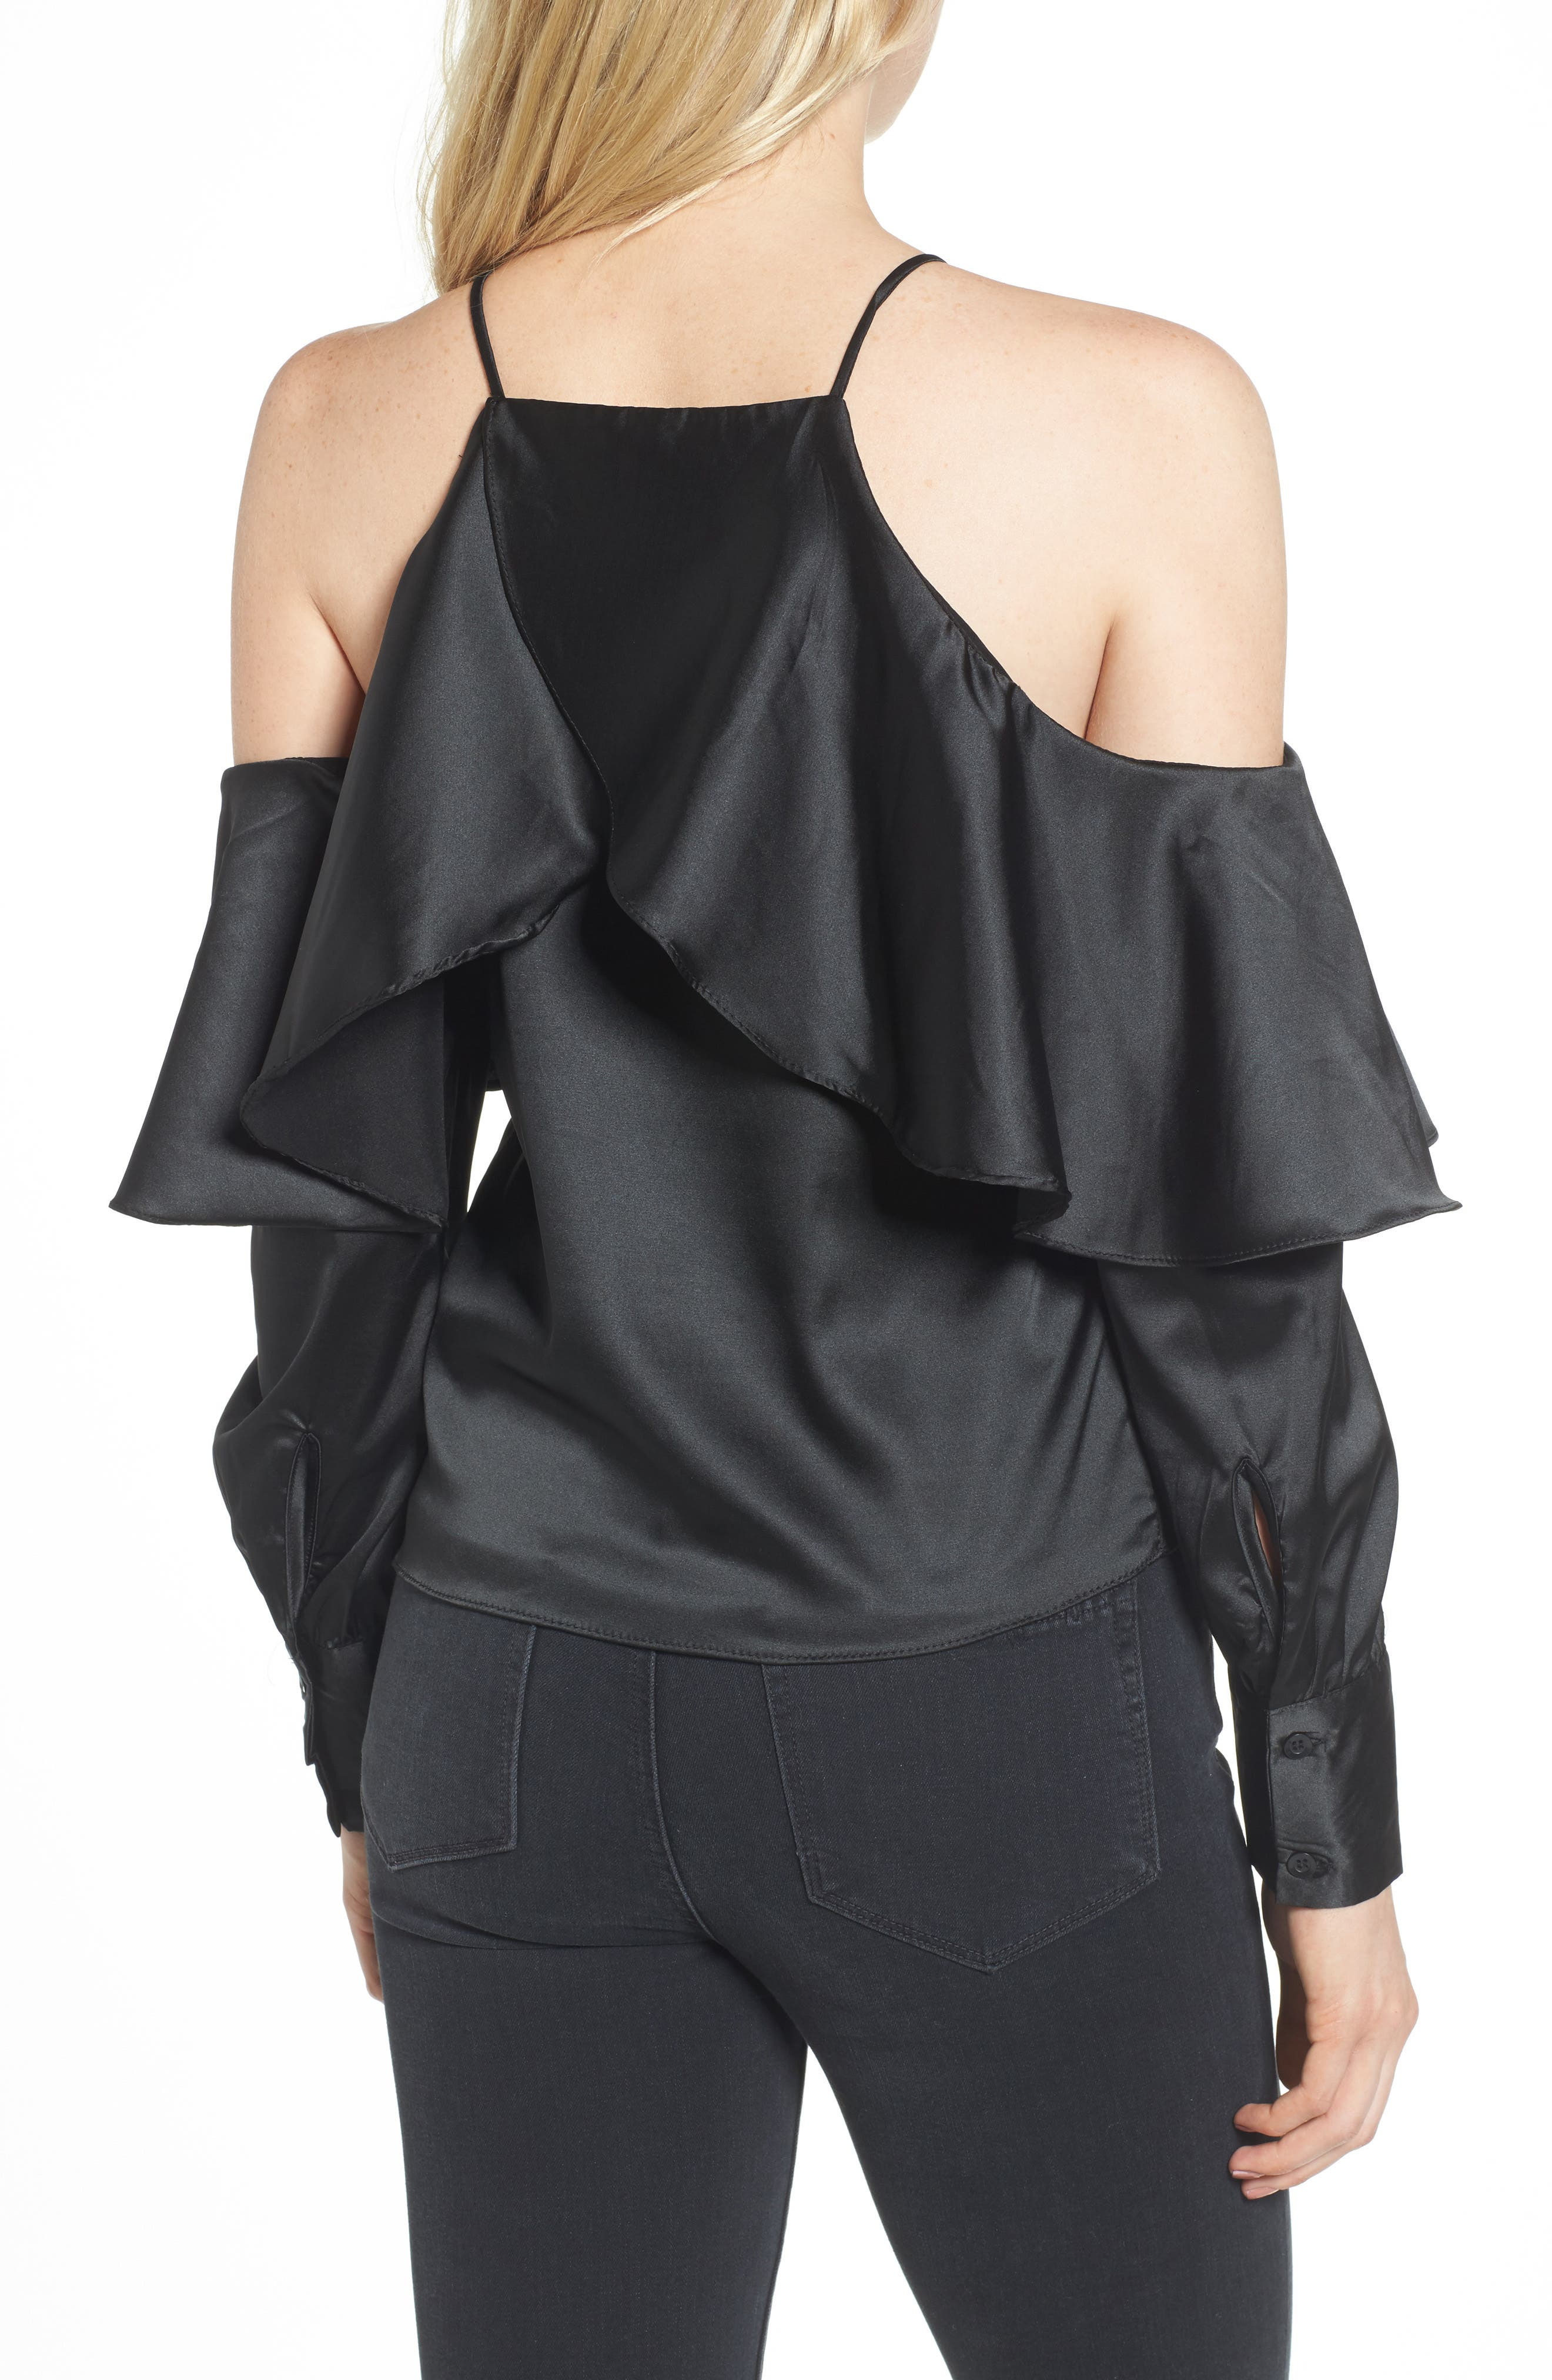 Bishop + Young Mia Cold Shoulder Blouse,                             Alternate thumbnail 2, color,                             001